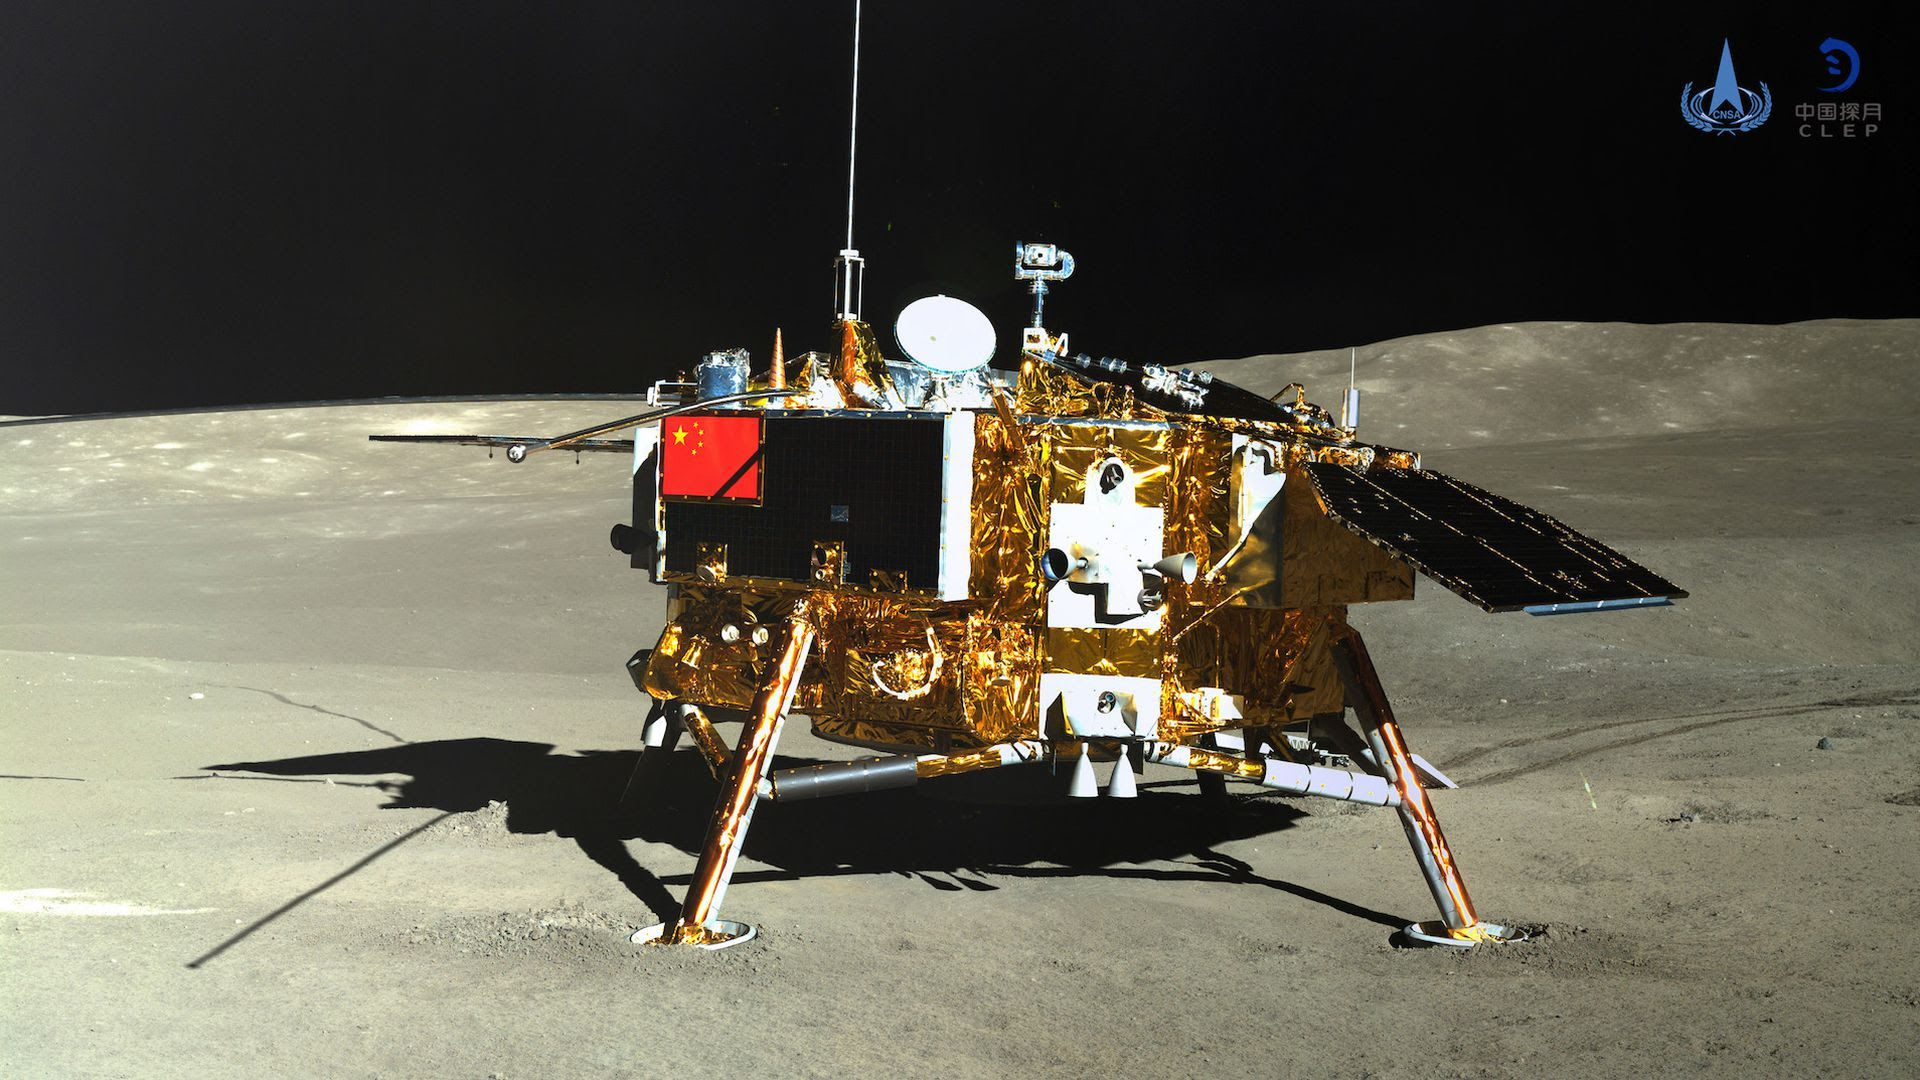 A photo of the Chinese lunar probe, Chang'e-4